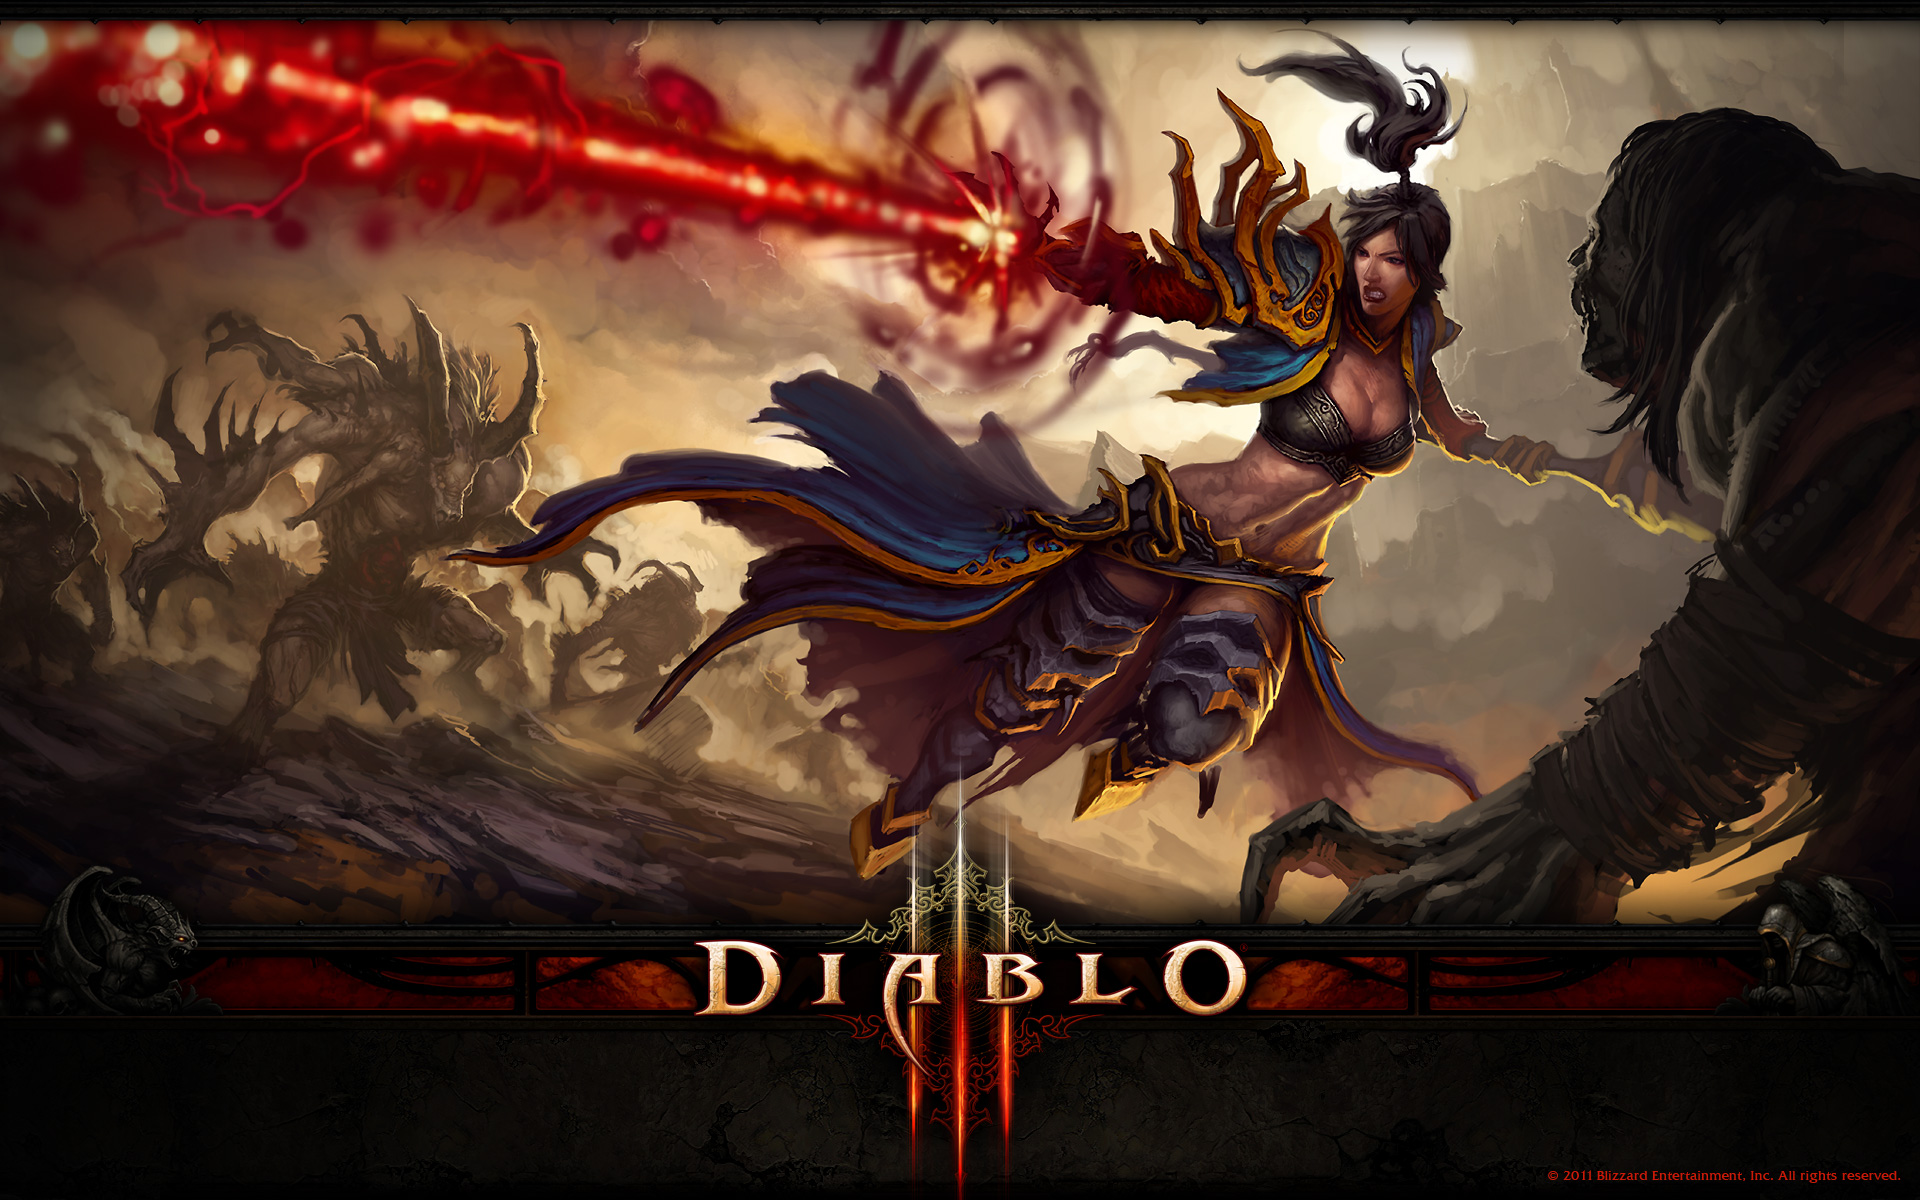 Diablo 3 Wallpaper – Wizard